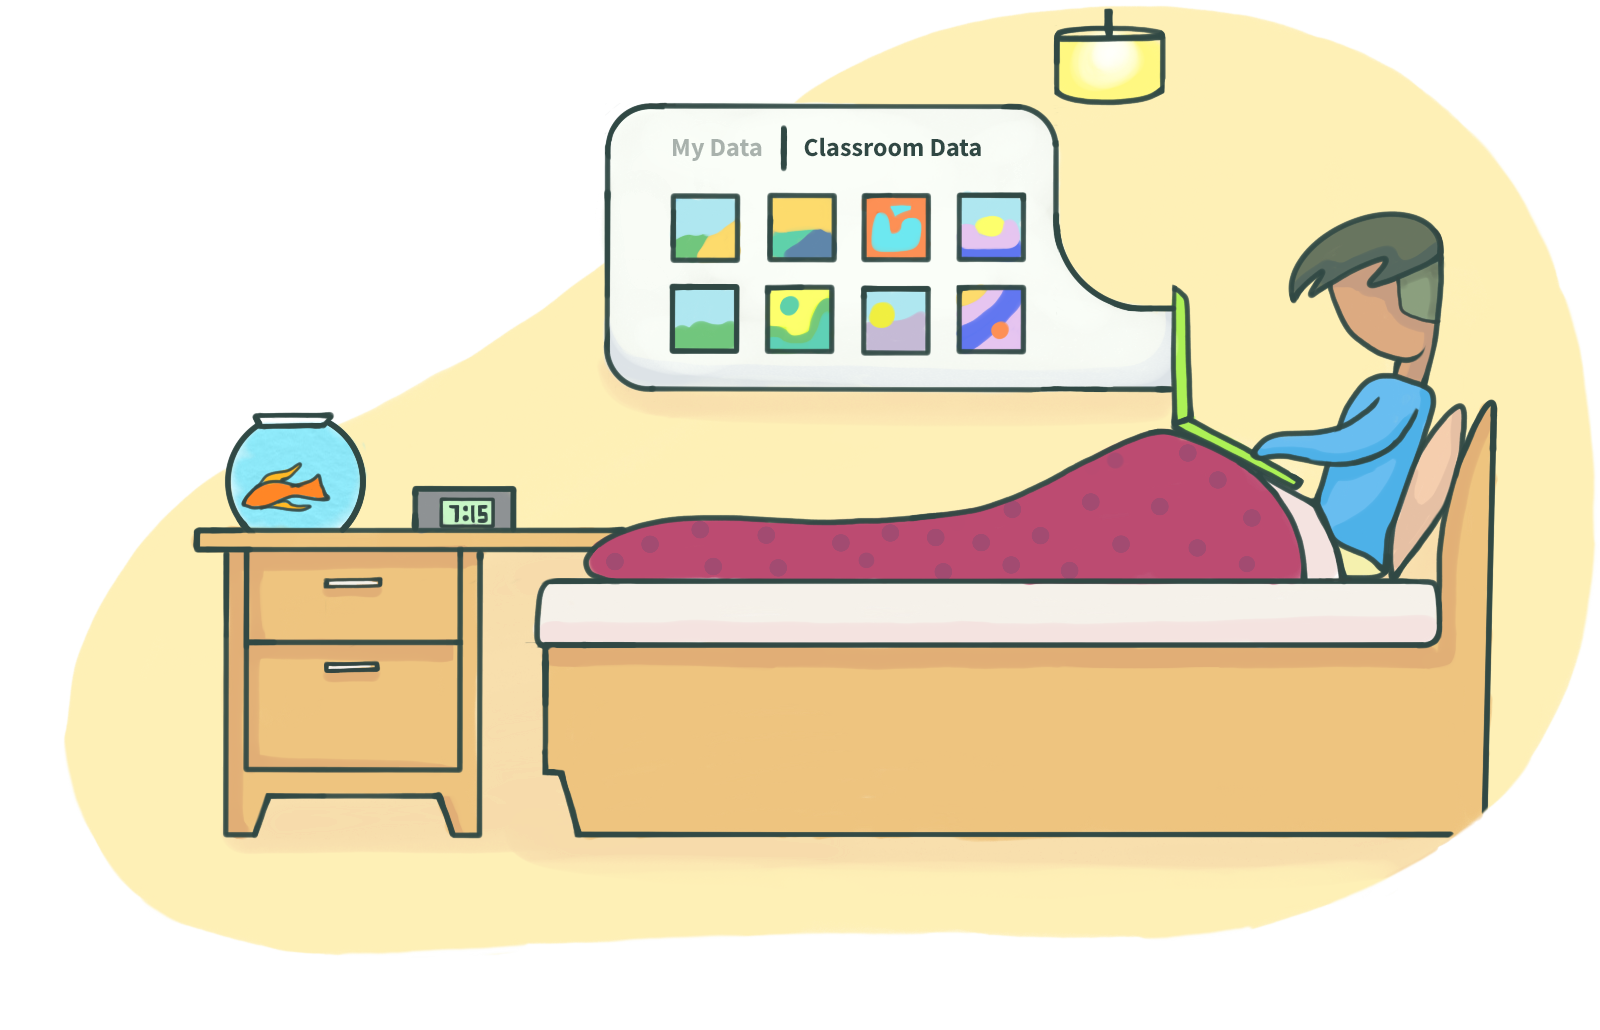 Drawing of learner on bed with laptop